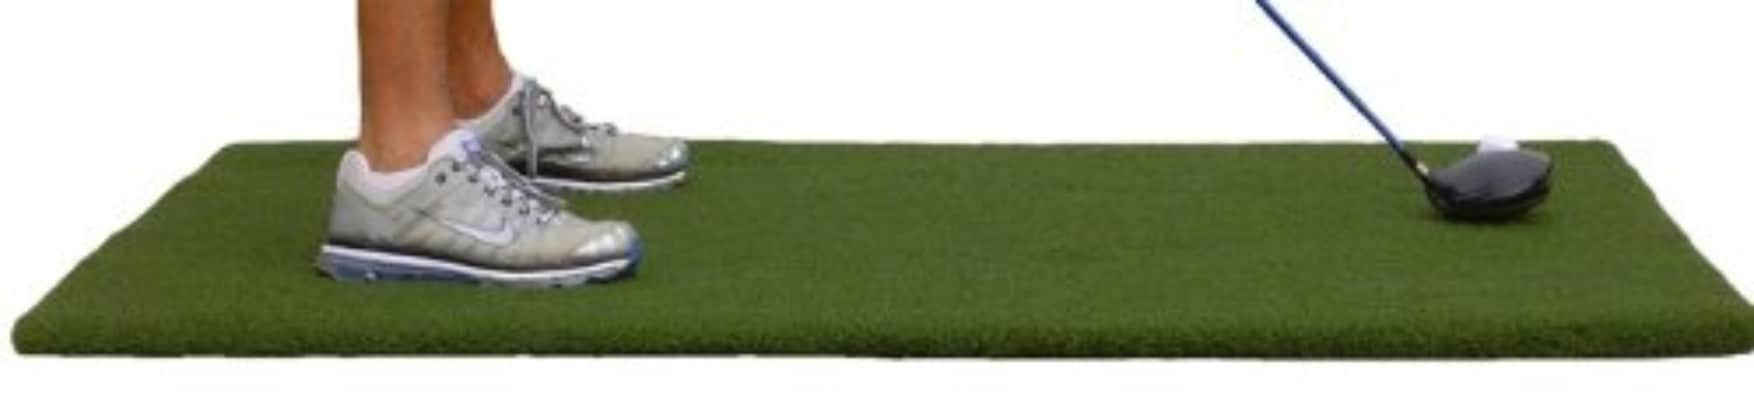 36 X 60 XL Super Tee Golf Mat - Holds A Wooden Tee